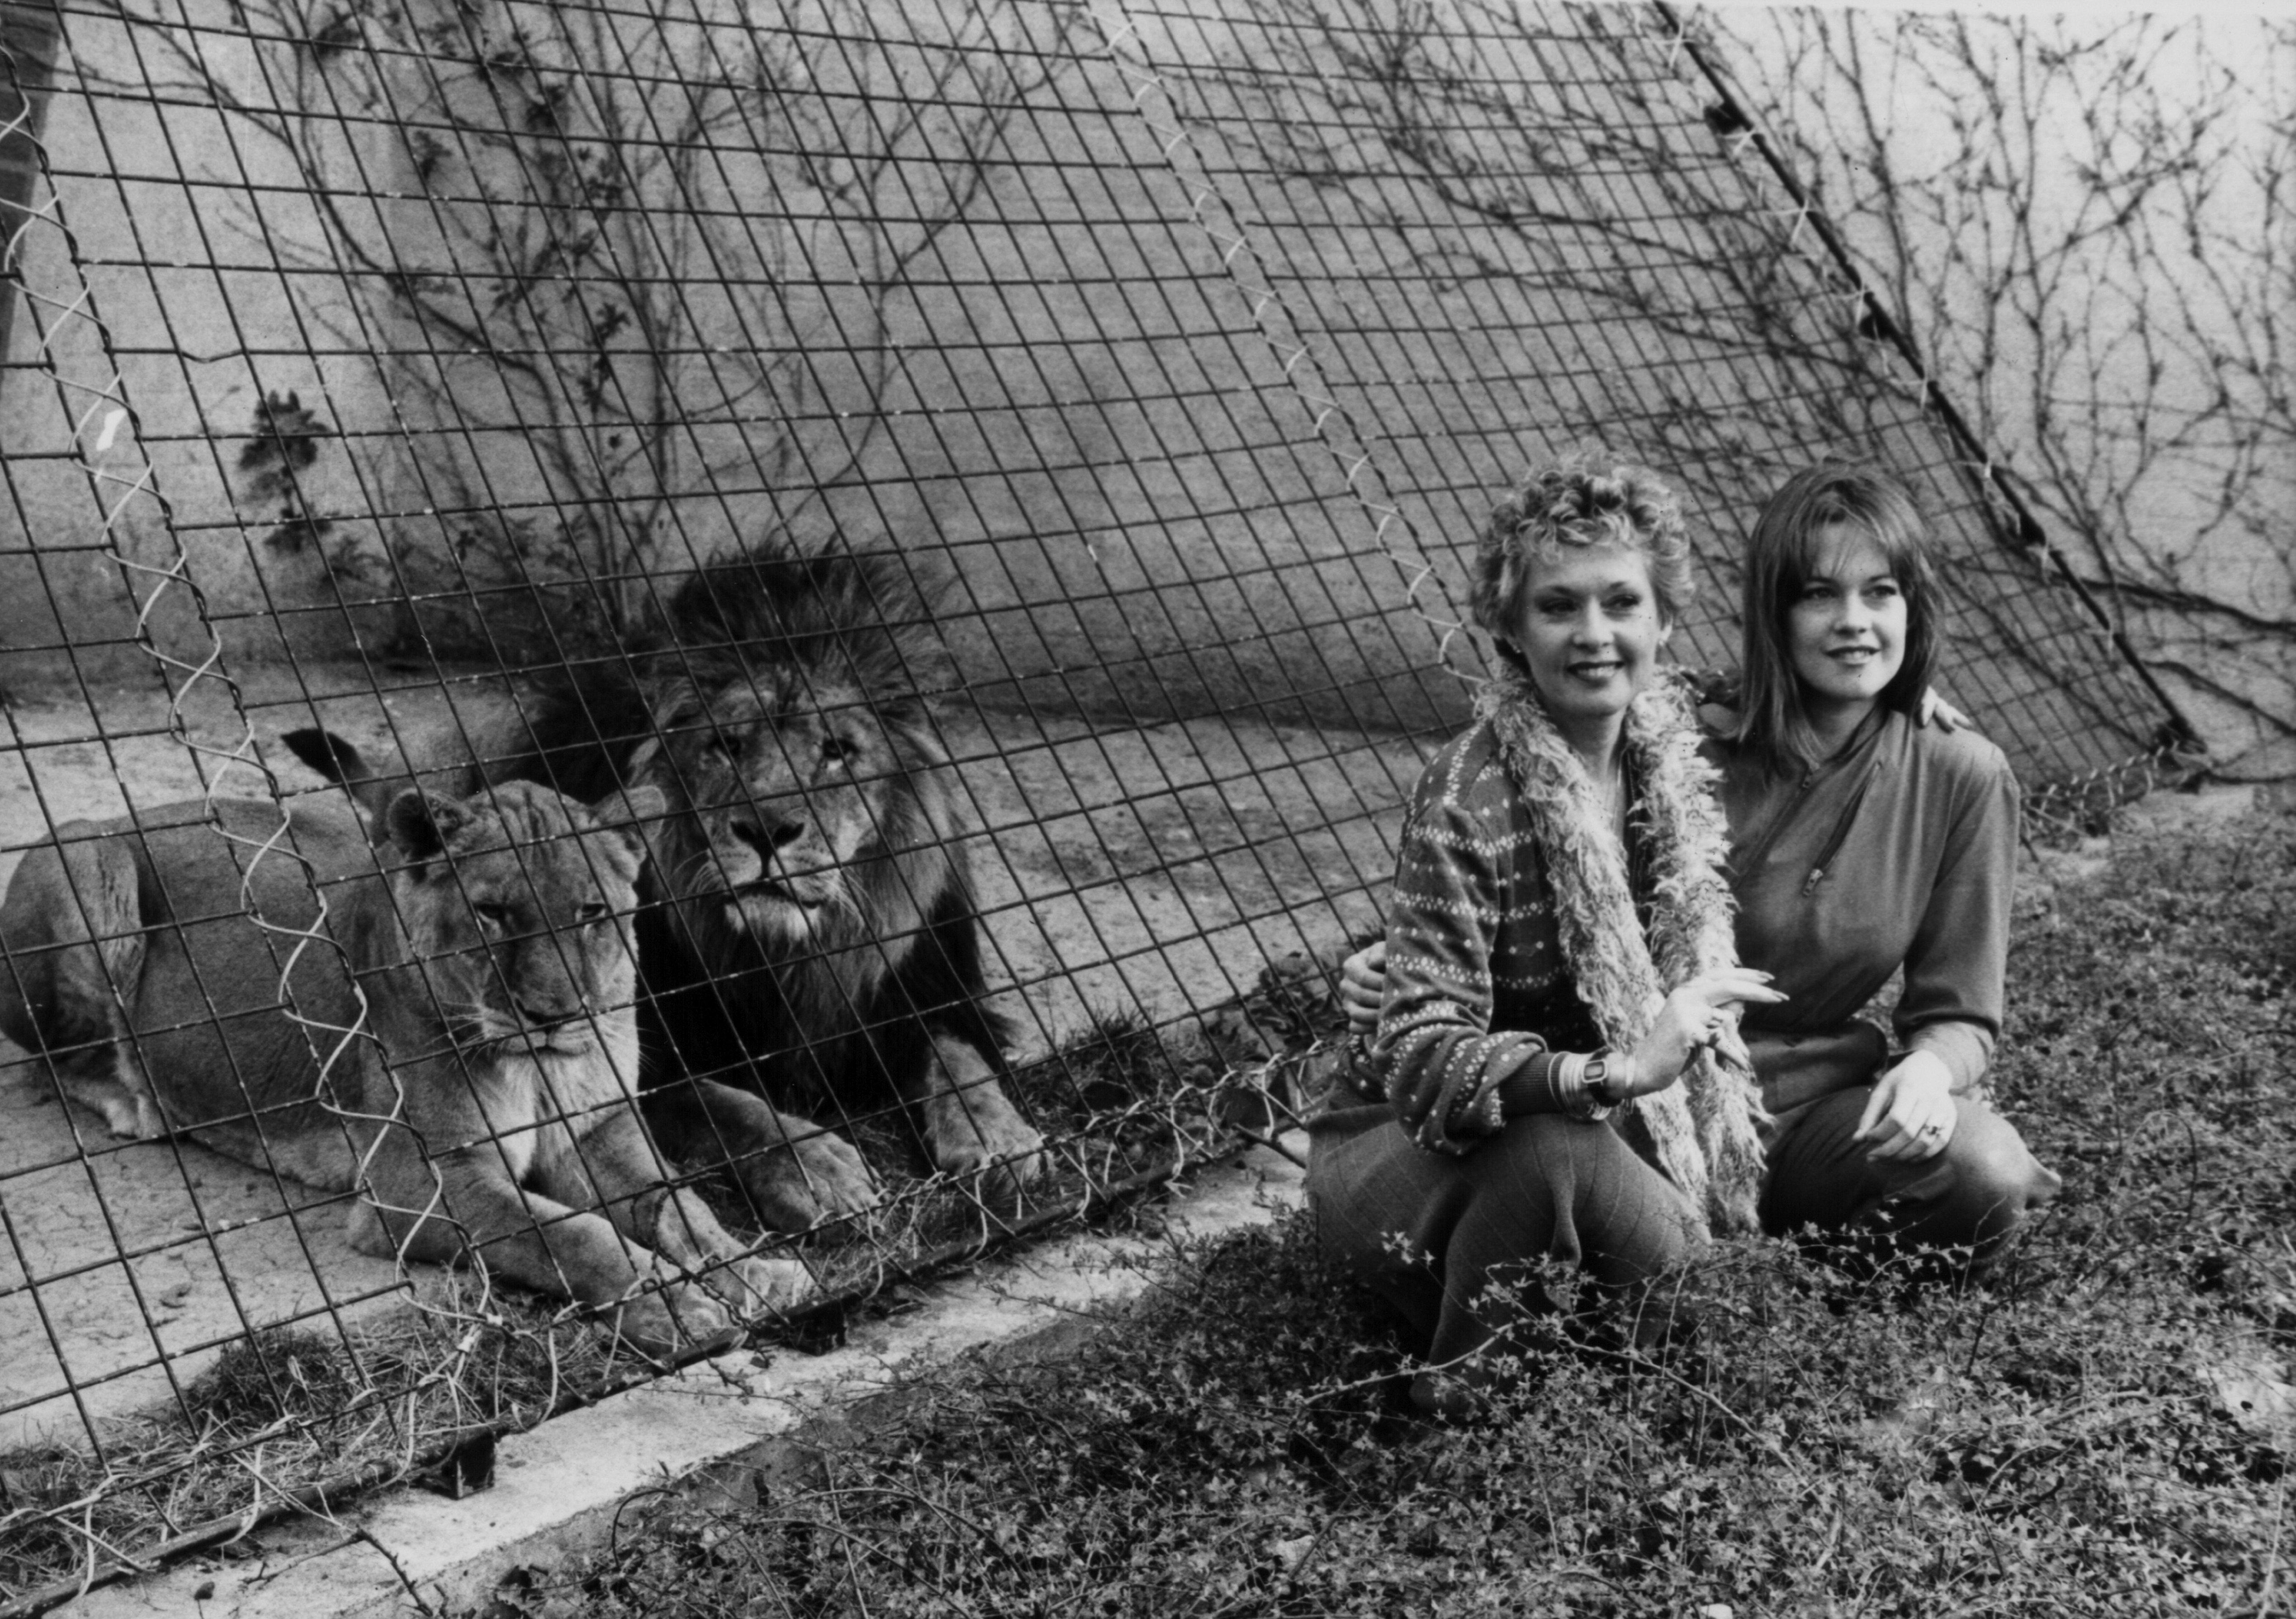 Actress Tippi Hedren and her actress daughter Melanie Griffith posing with the lions at London Zoo, to promote the movie 'Roar', March 29th 1982.| Source: Getty Images